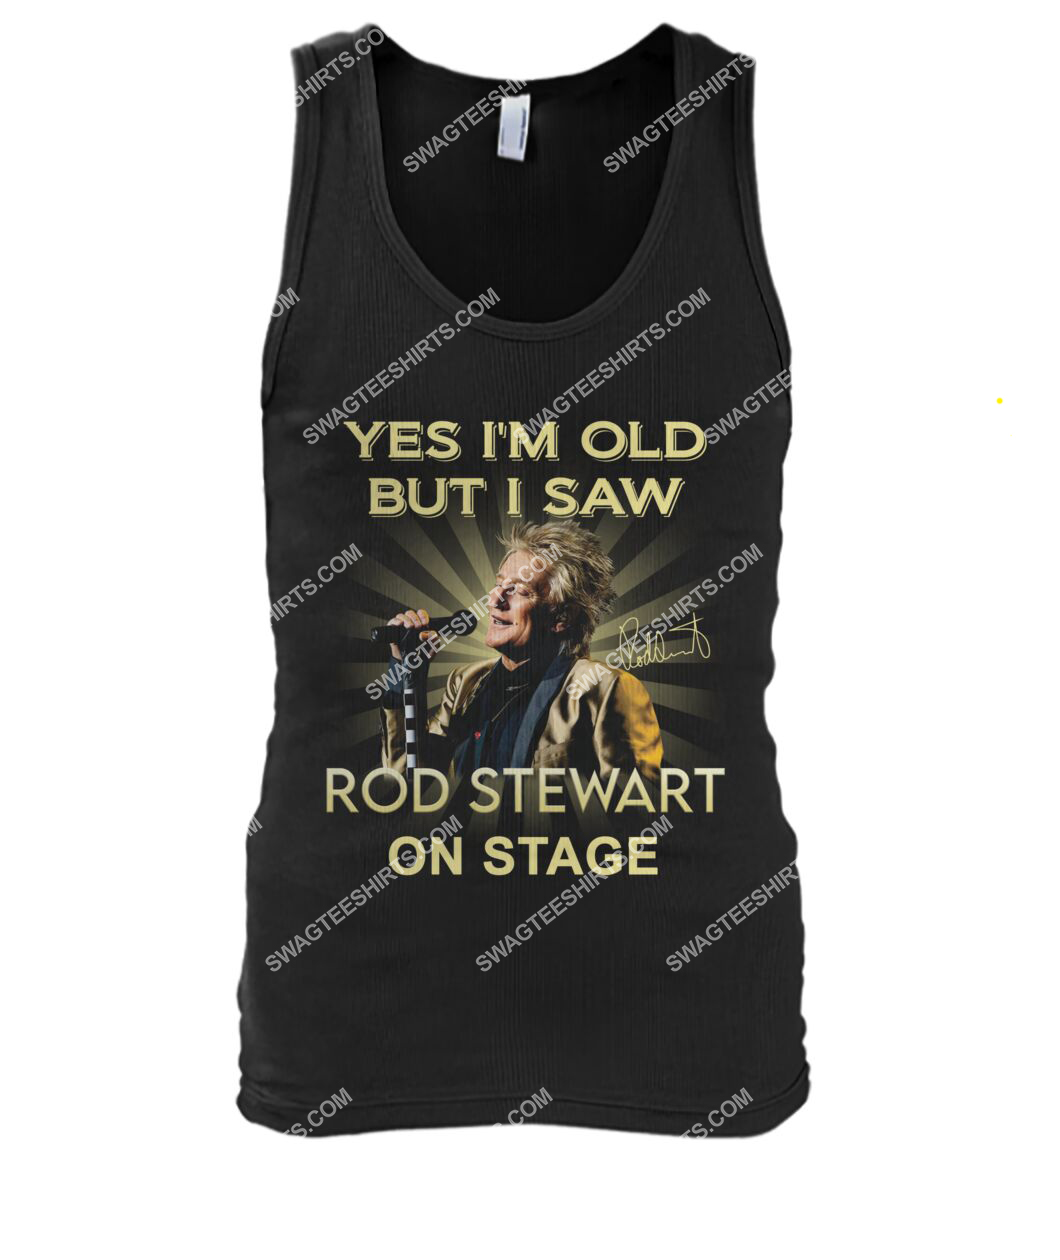 yes i am old but i saw rob stewart on stage vintage tank top 1